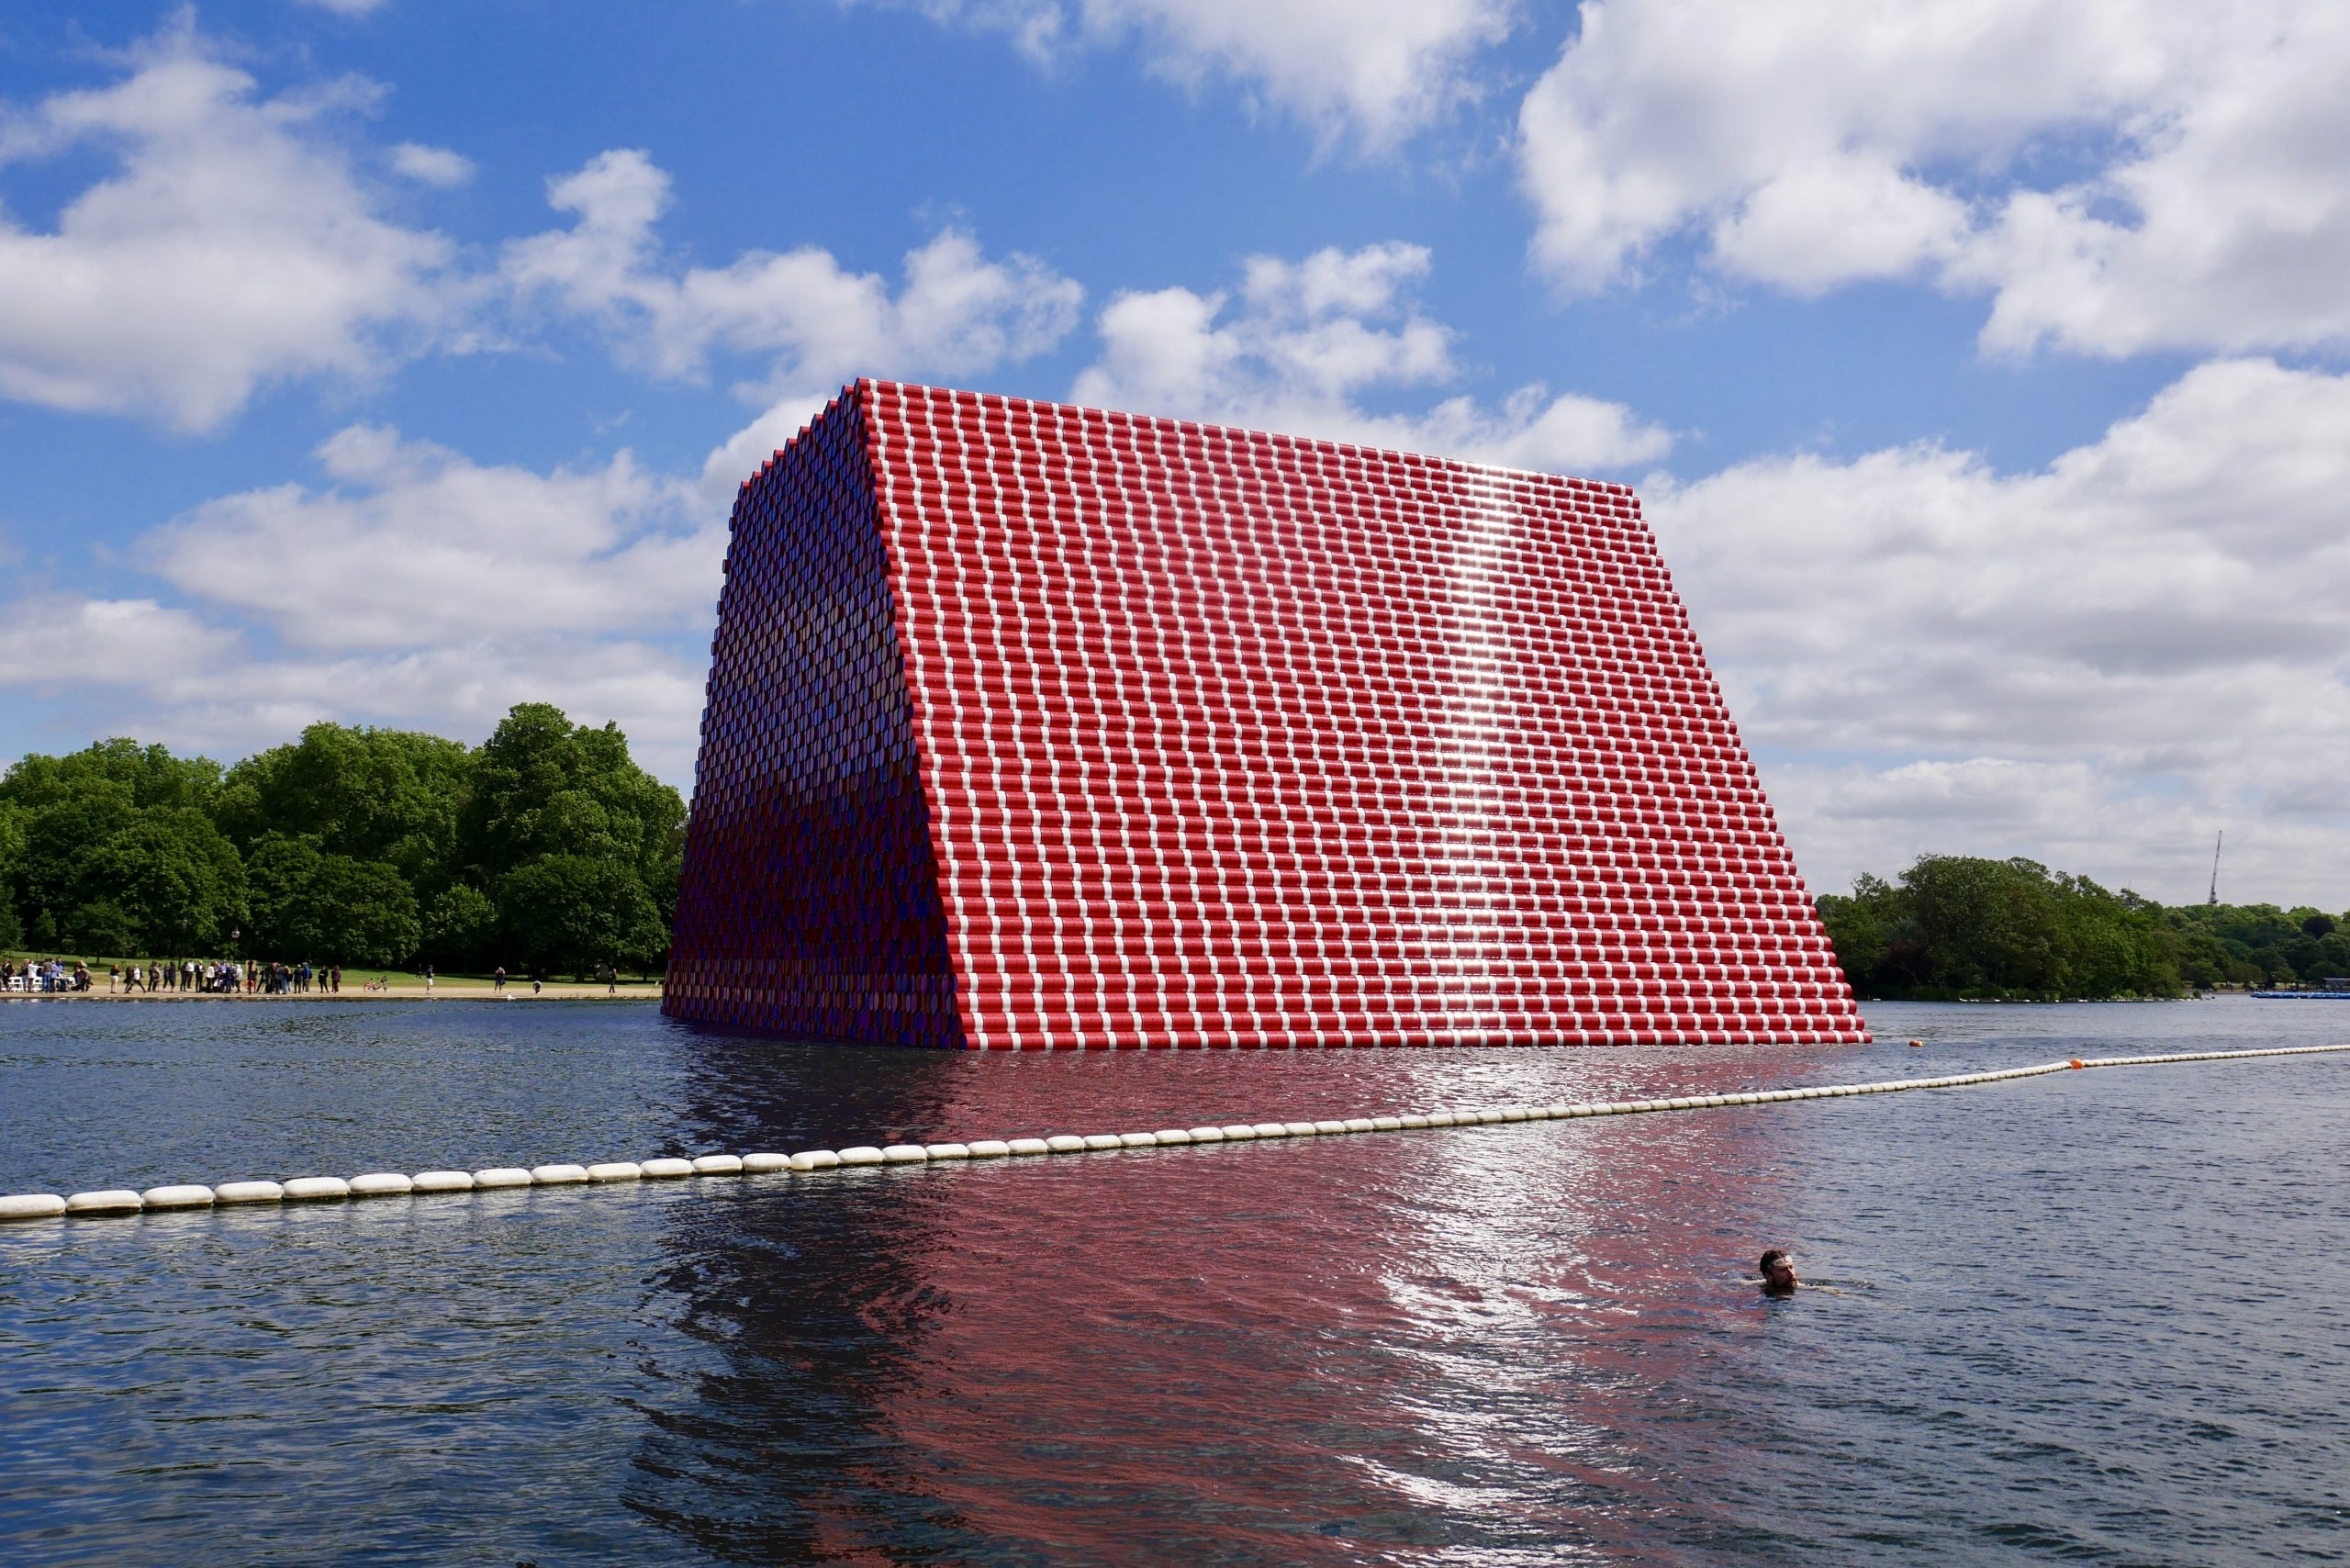 Serpentine Lido Swimmer near Christo London Mastaba